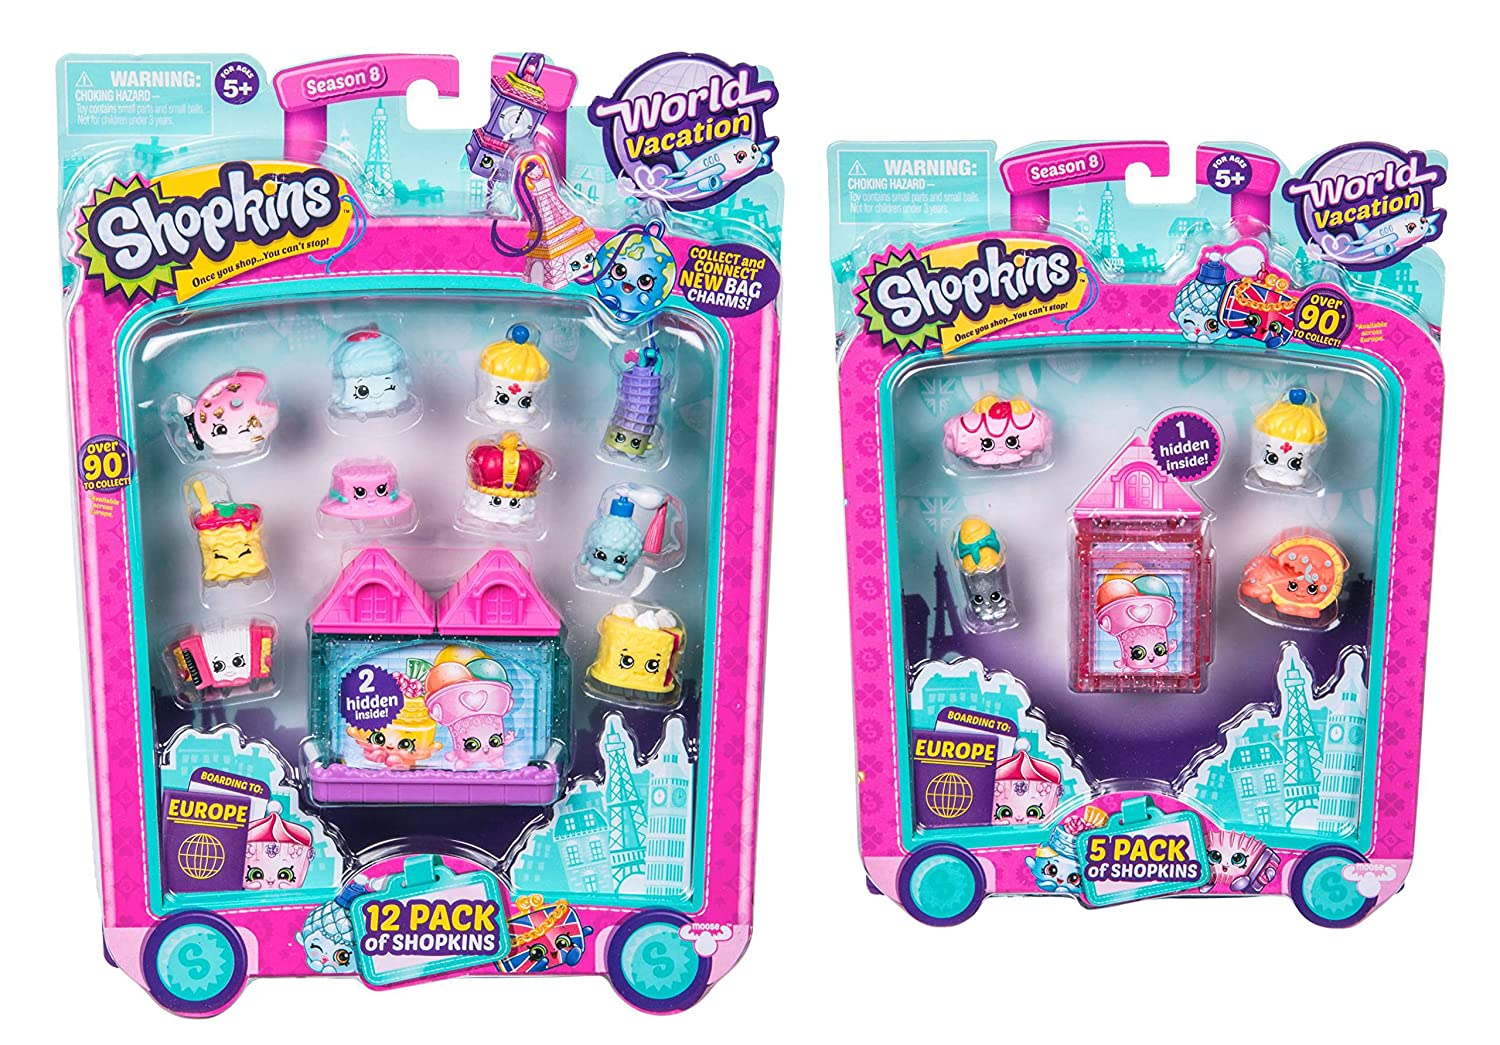 Shopkins Season 8 World Vacation (Europe) Bundle & B073HCGV7T - 5 Bundle Pack & 12 Pack B073HCGV7T, 氏家町:3b6428ab --- arvoreazul.com.br